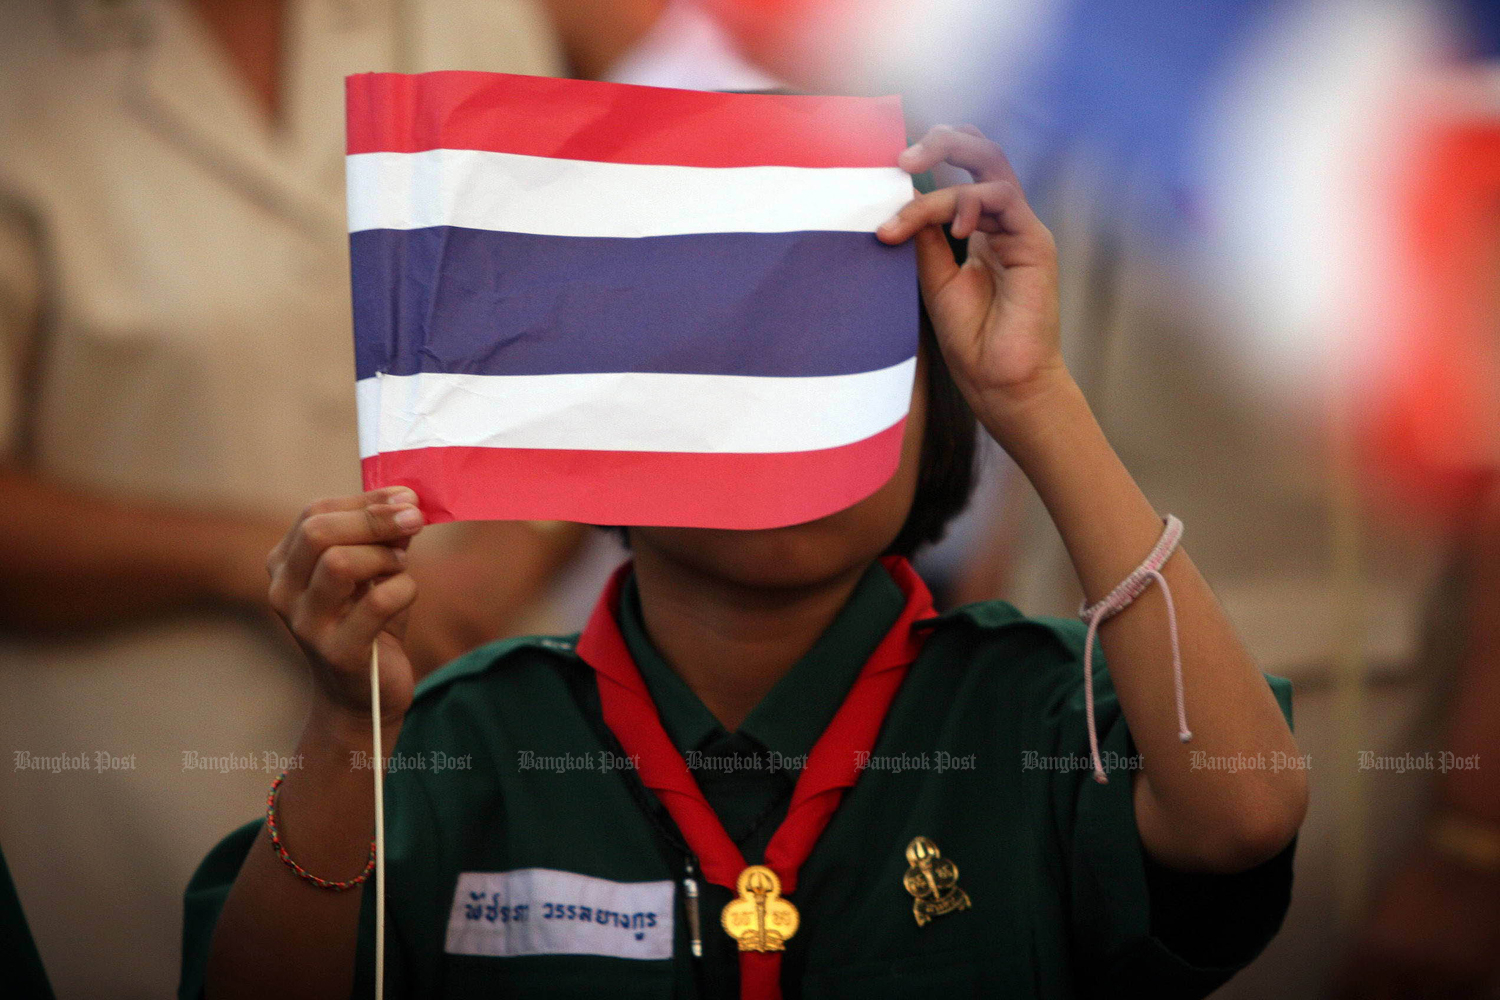 The government will re-edit a music video accompanying the Thai national anthem to feature more Buddhist imagery. (Post Today photo)